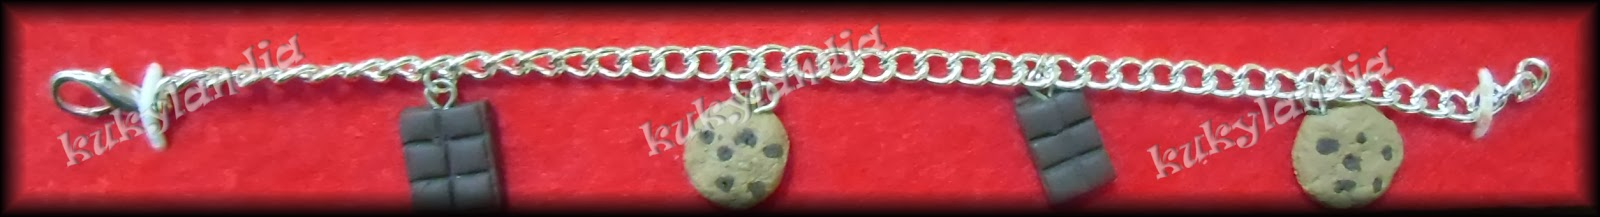 Pulsera dijes cookies y chocolate